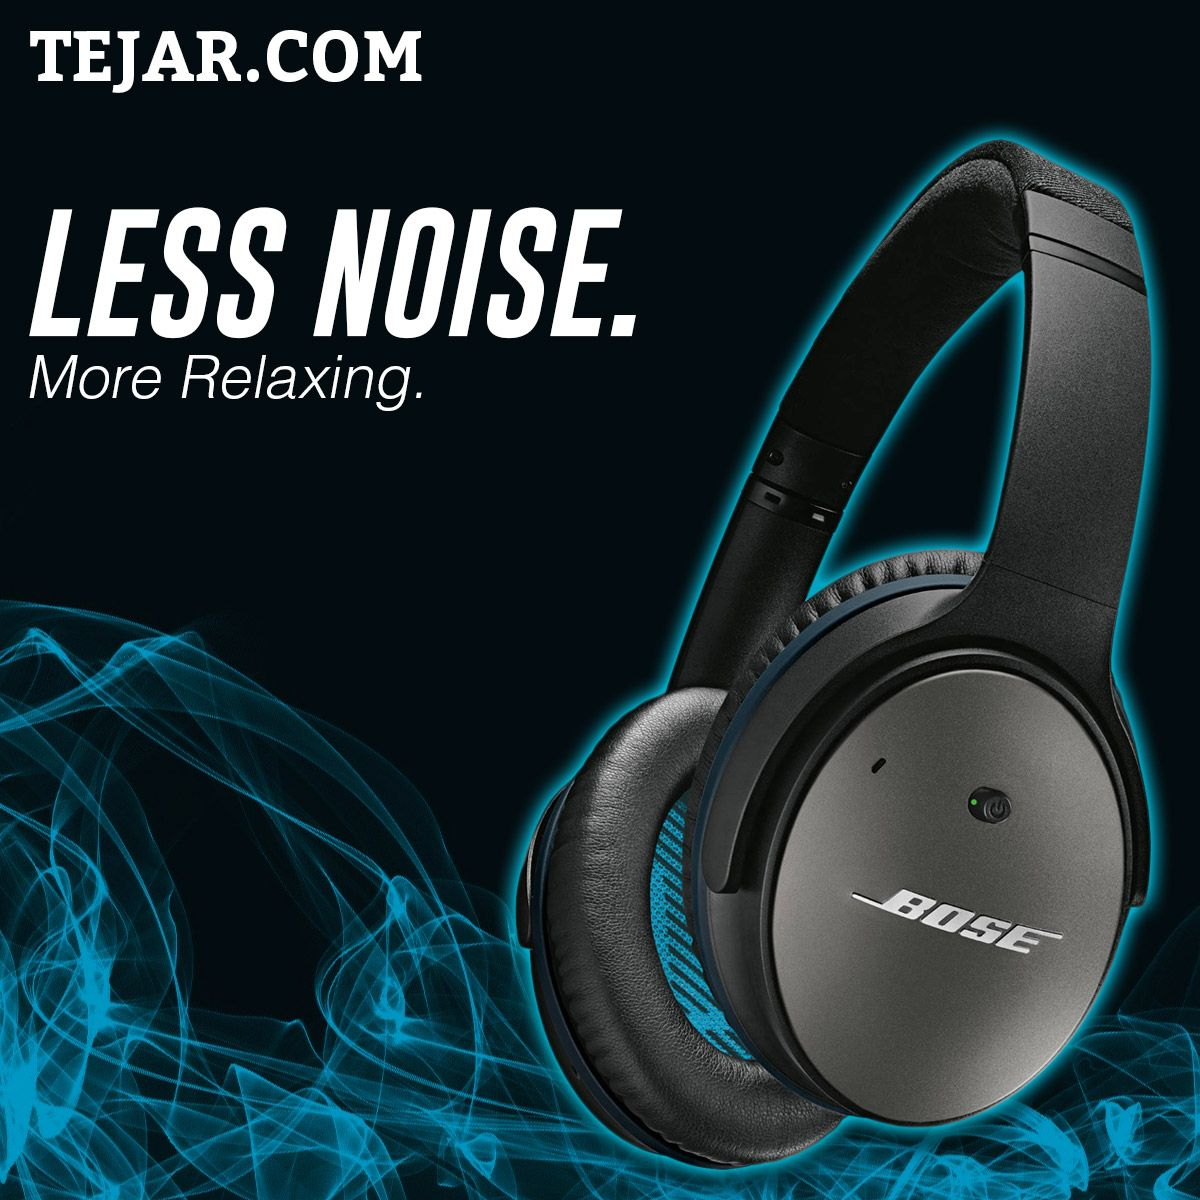 dab898f02f5 QuietComfort 25 headphones are engineered to sound better, be more  comfortable and easier to take with you. #Tejar #Bose #uae #dubai